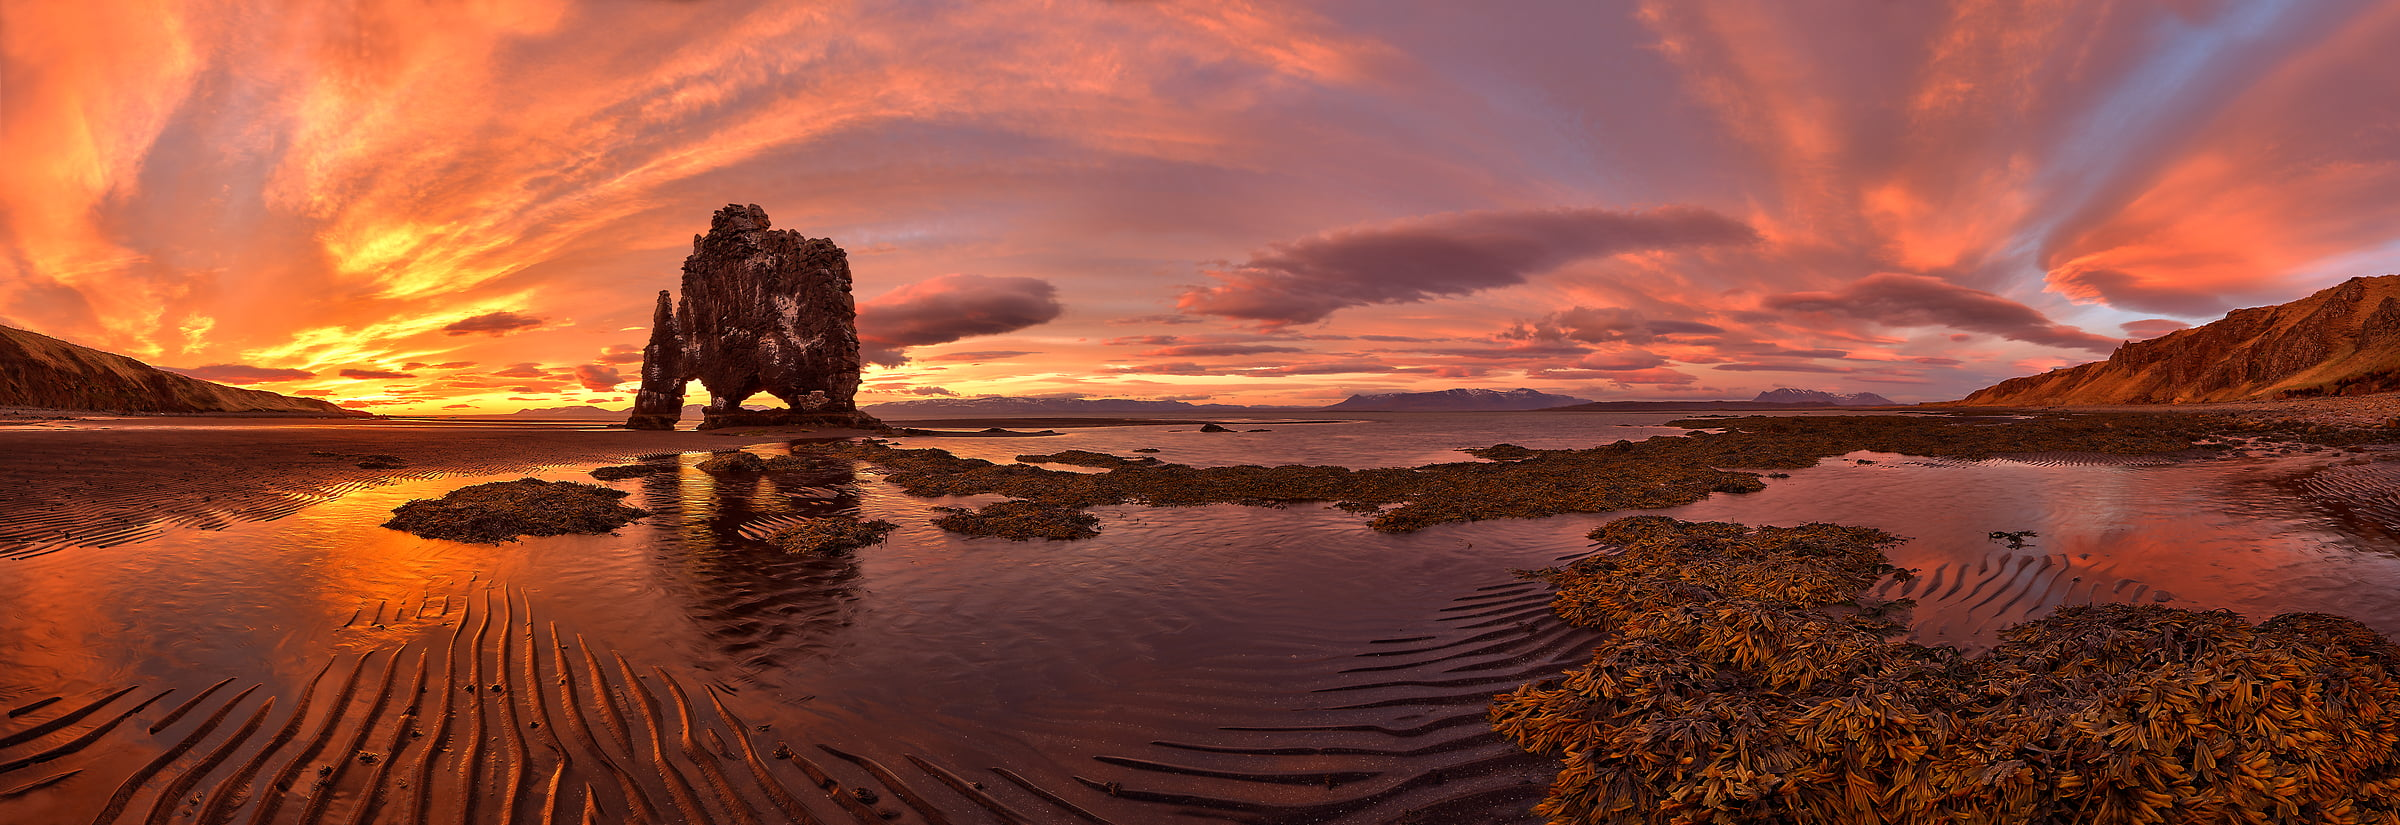 A very high resolution, large-format VAST photo of sunset and sunrise on the water with a giant rock structure called Hvítserkur Monolith or Dinosaur Rock; fine art landscape photo created by Scott Dimond in the Northwestern Region of Iceland